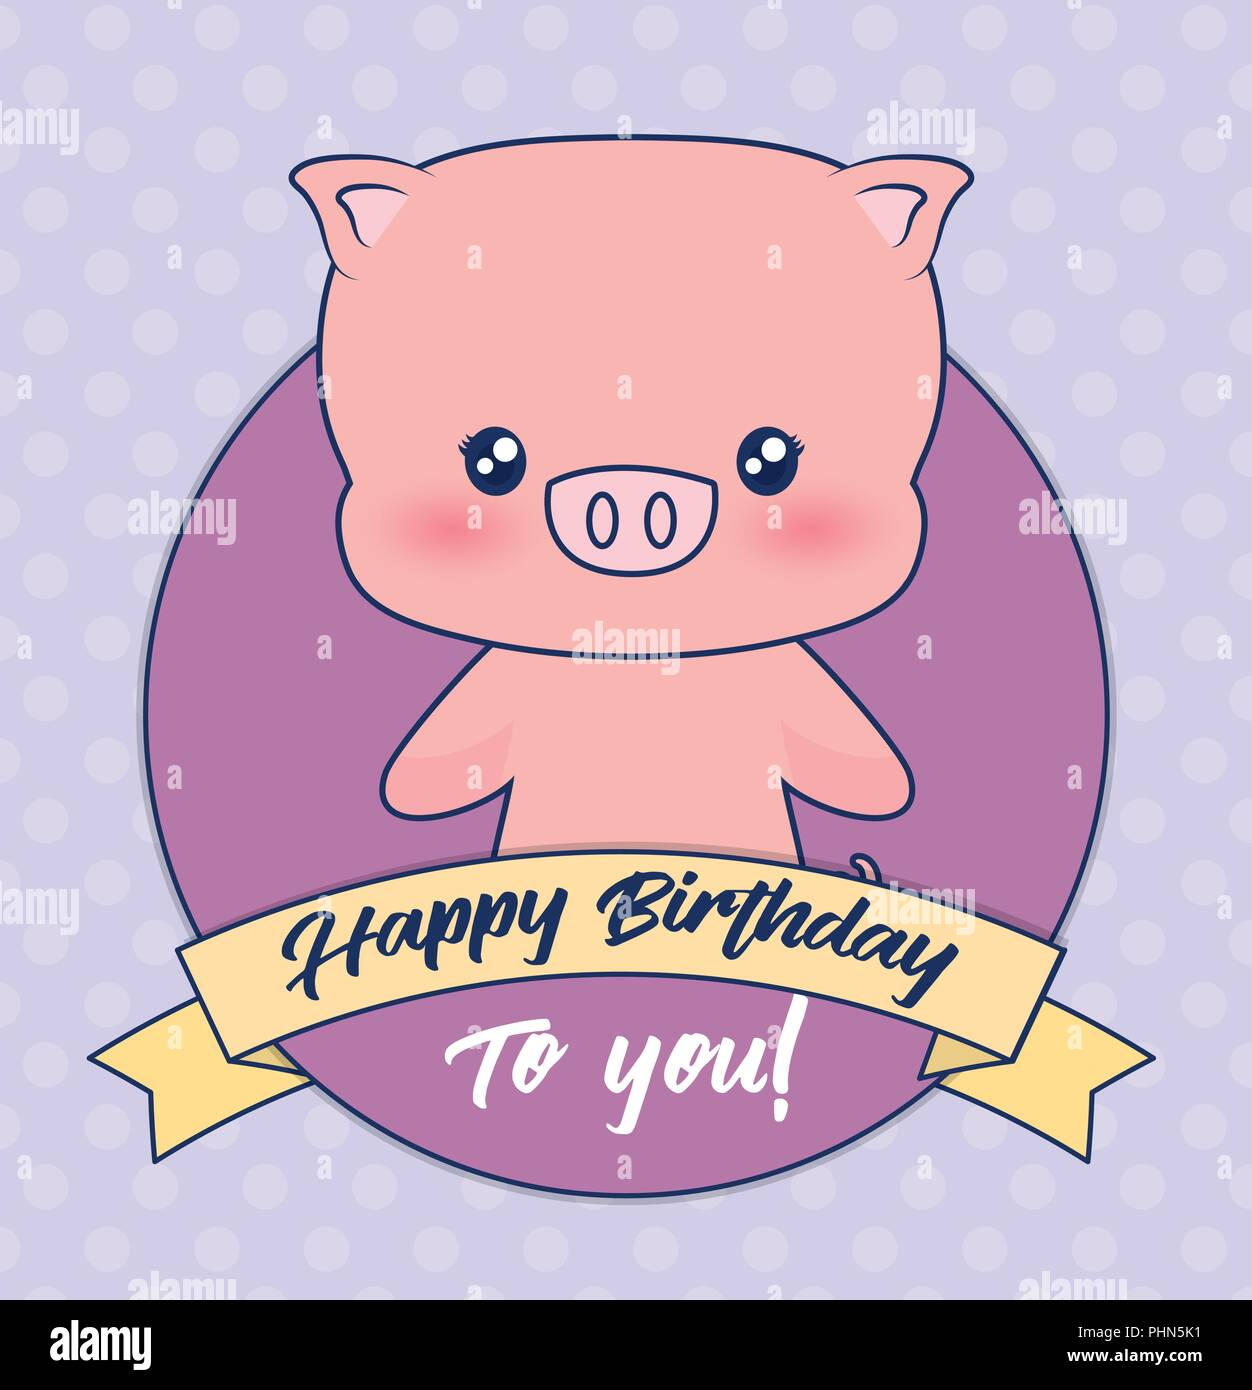 Happy Birthday Design With Decorative Ribbon And Cute Pig Icon Over Purple Background Colorful Design Vector Illustration Stock Vector Image Art Alamy